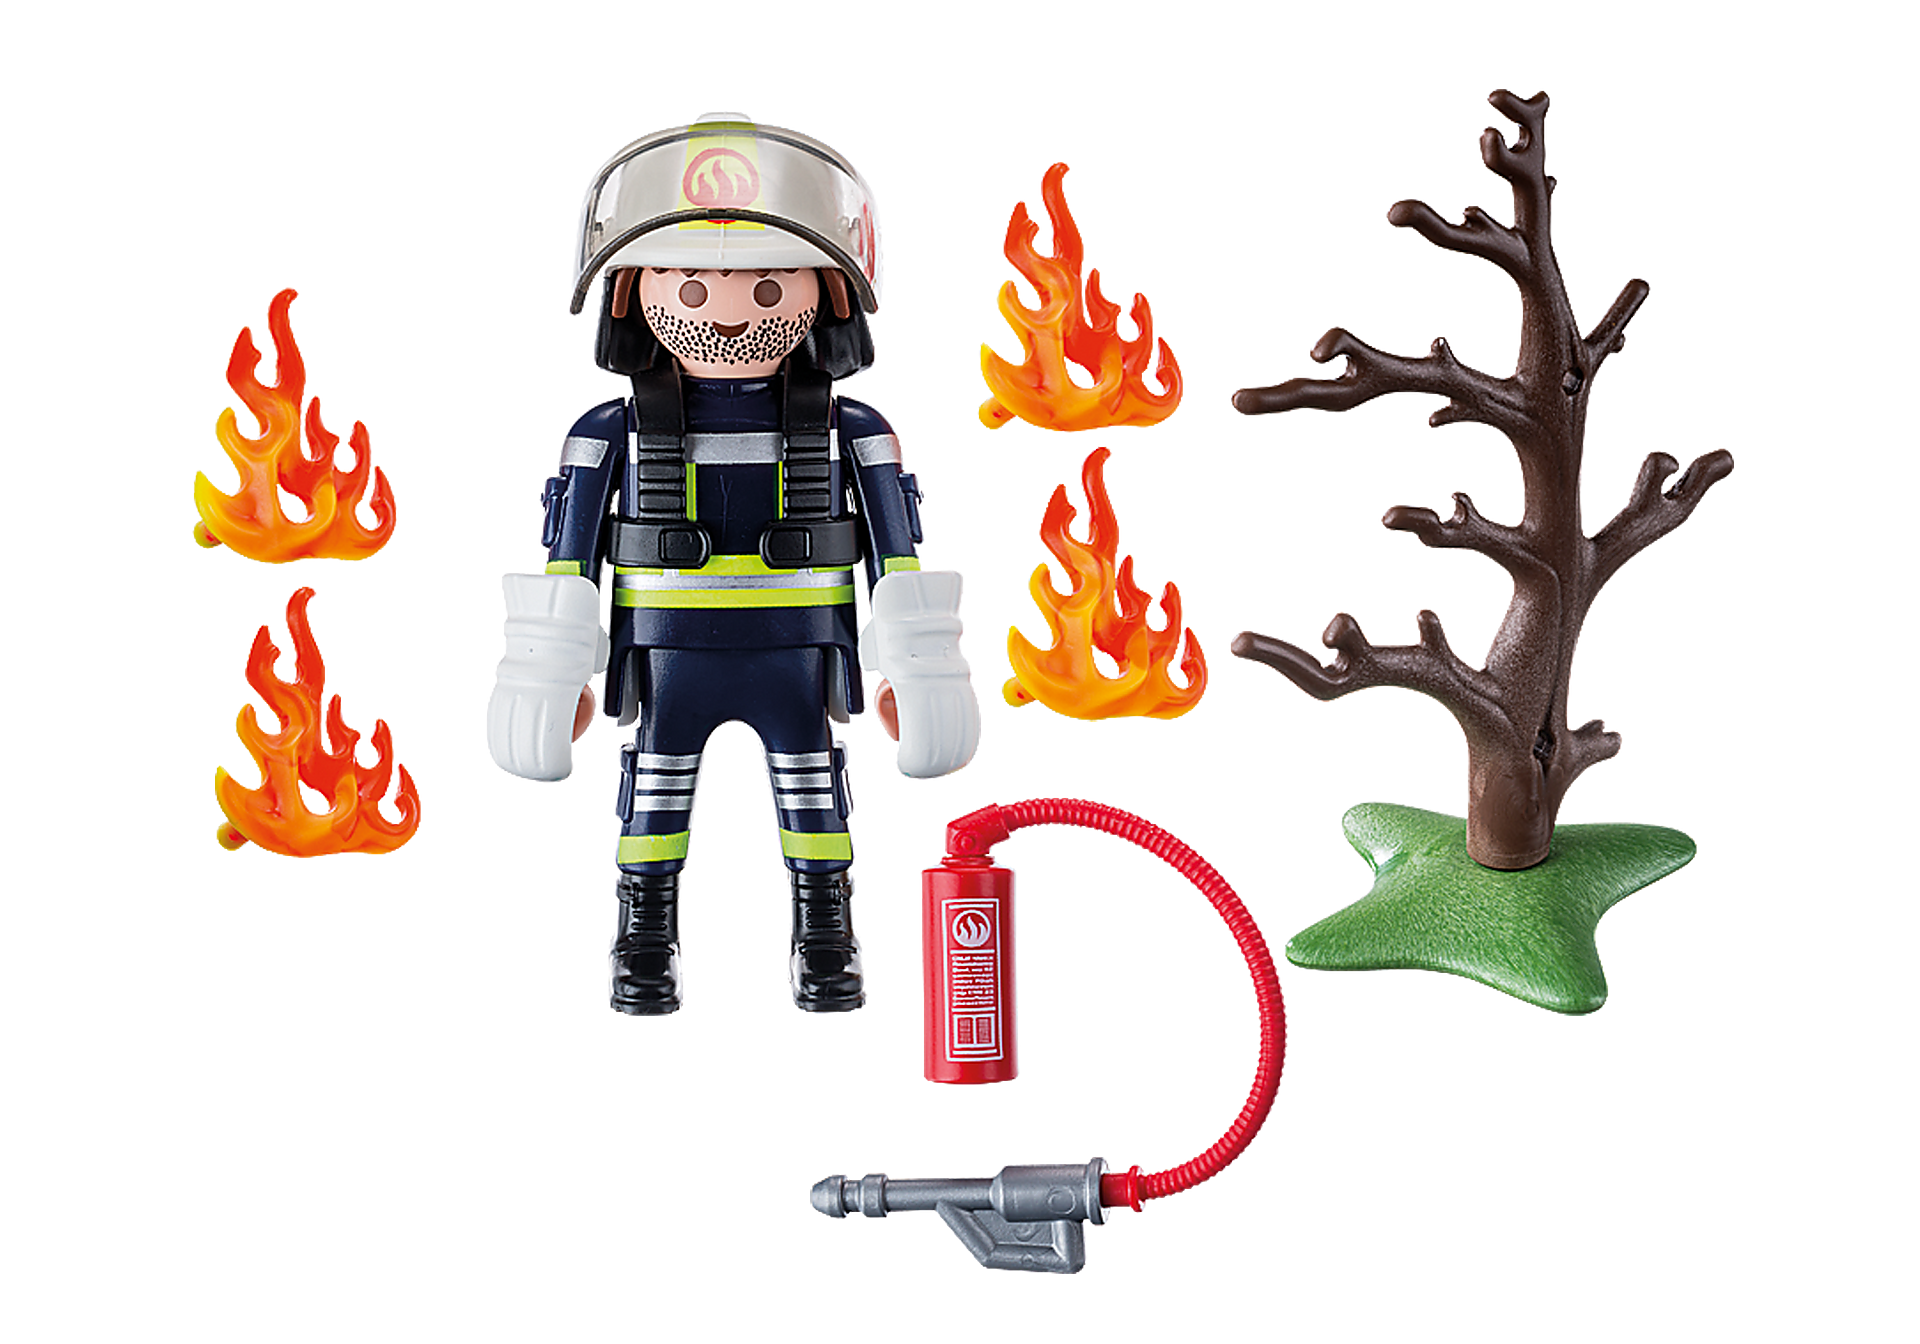 9093 Firefighter with Tree zoom image4